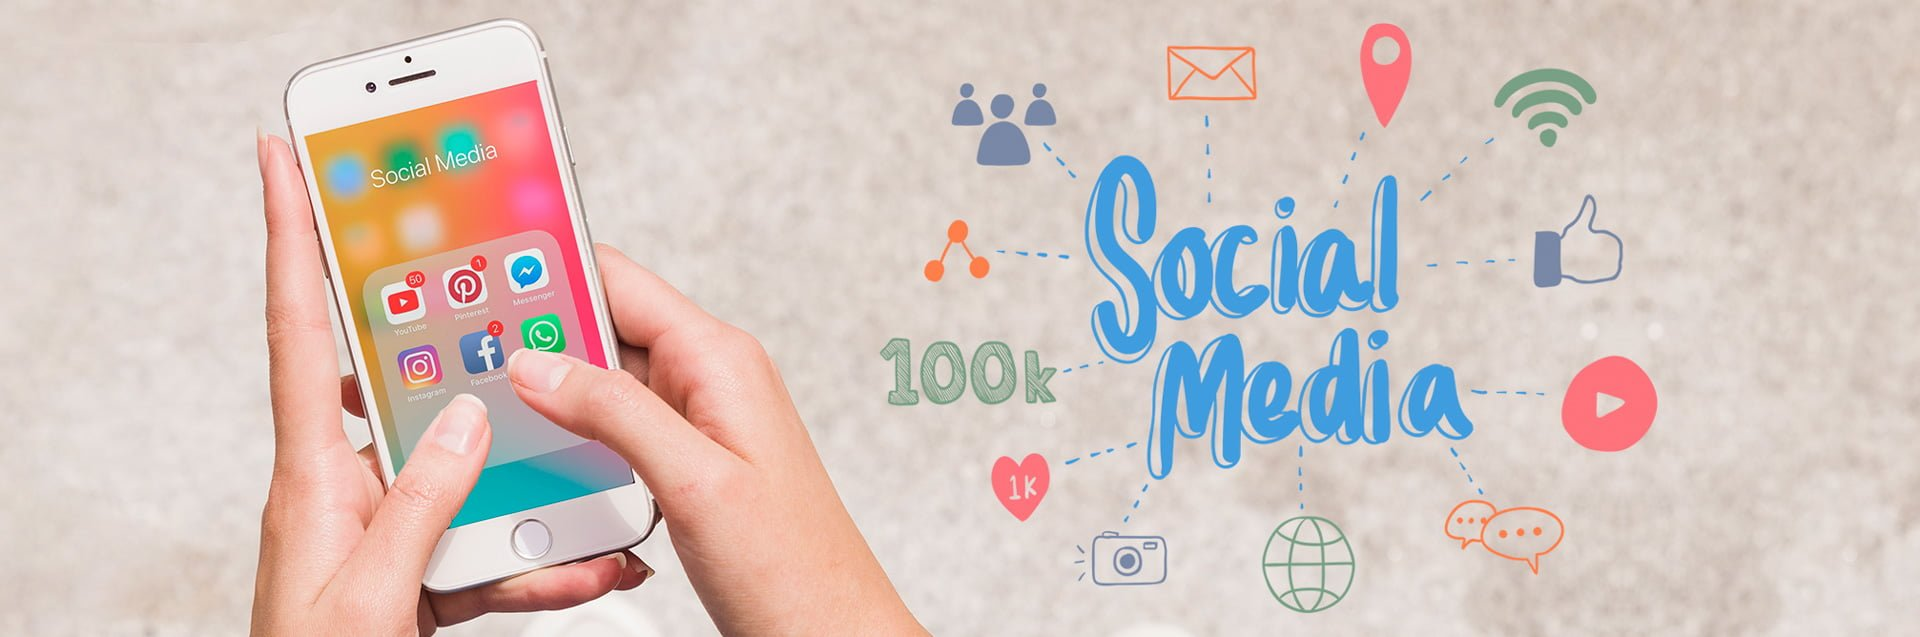 Social Media Marketing Services (SMM)